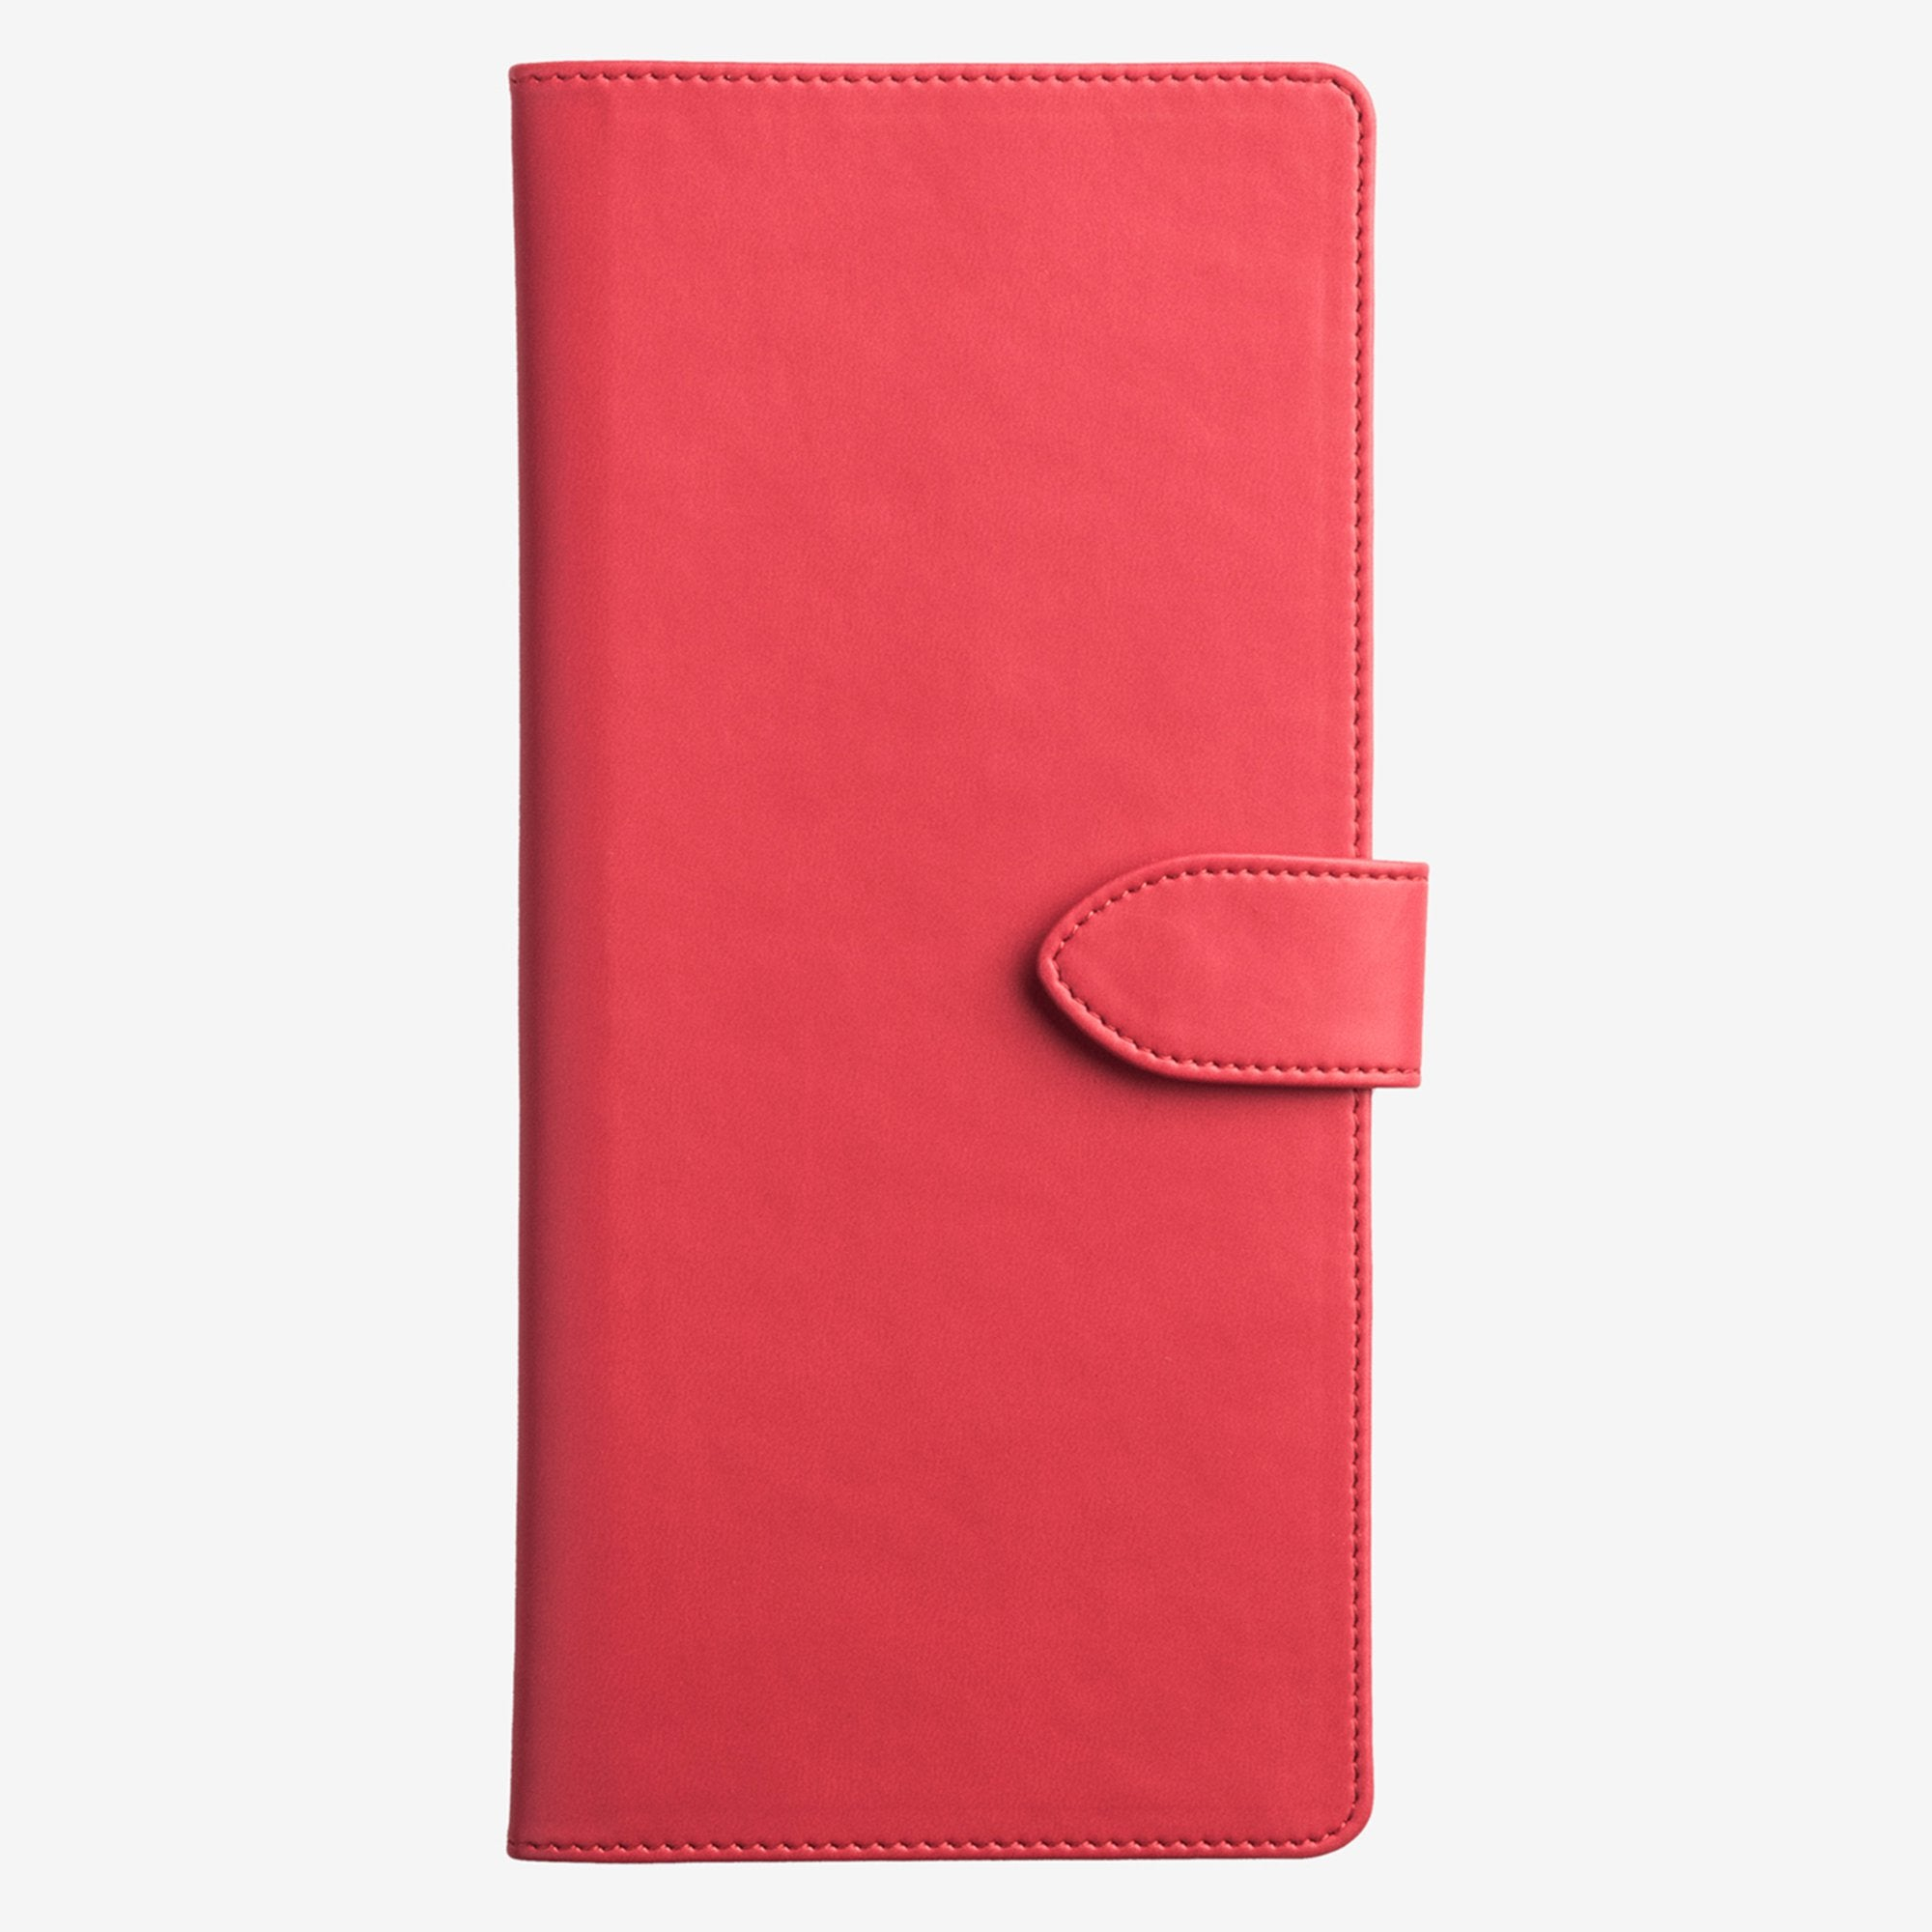 Travel Organizer - Red